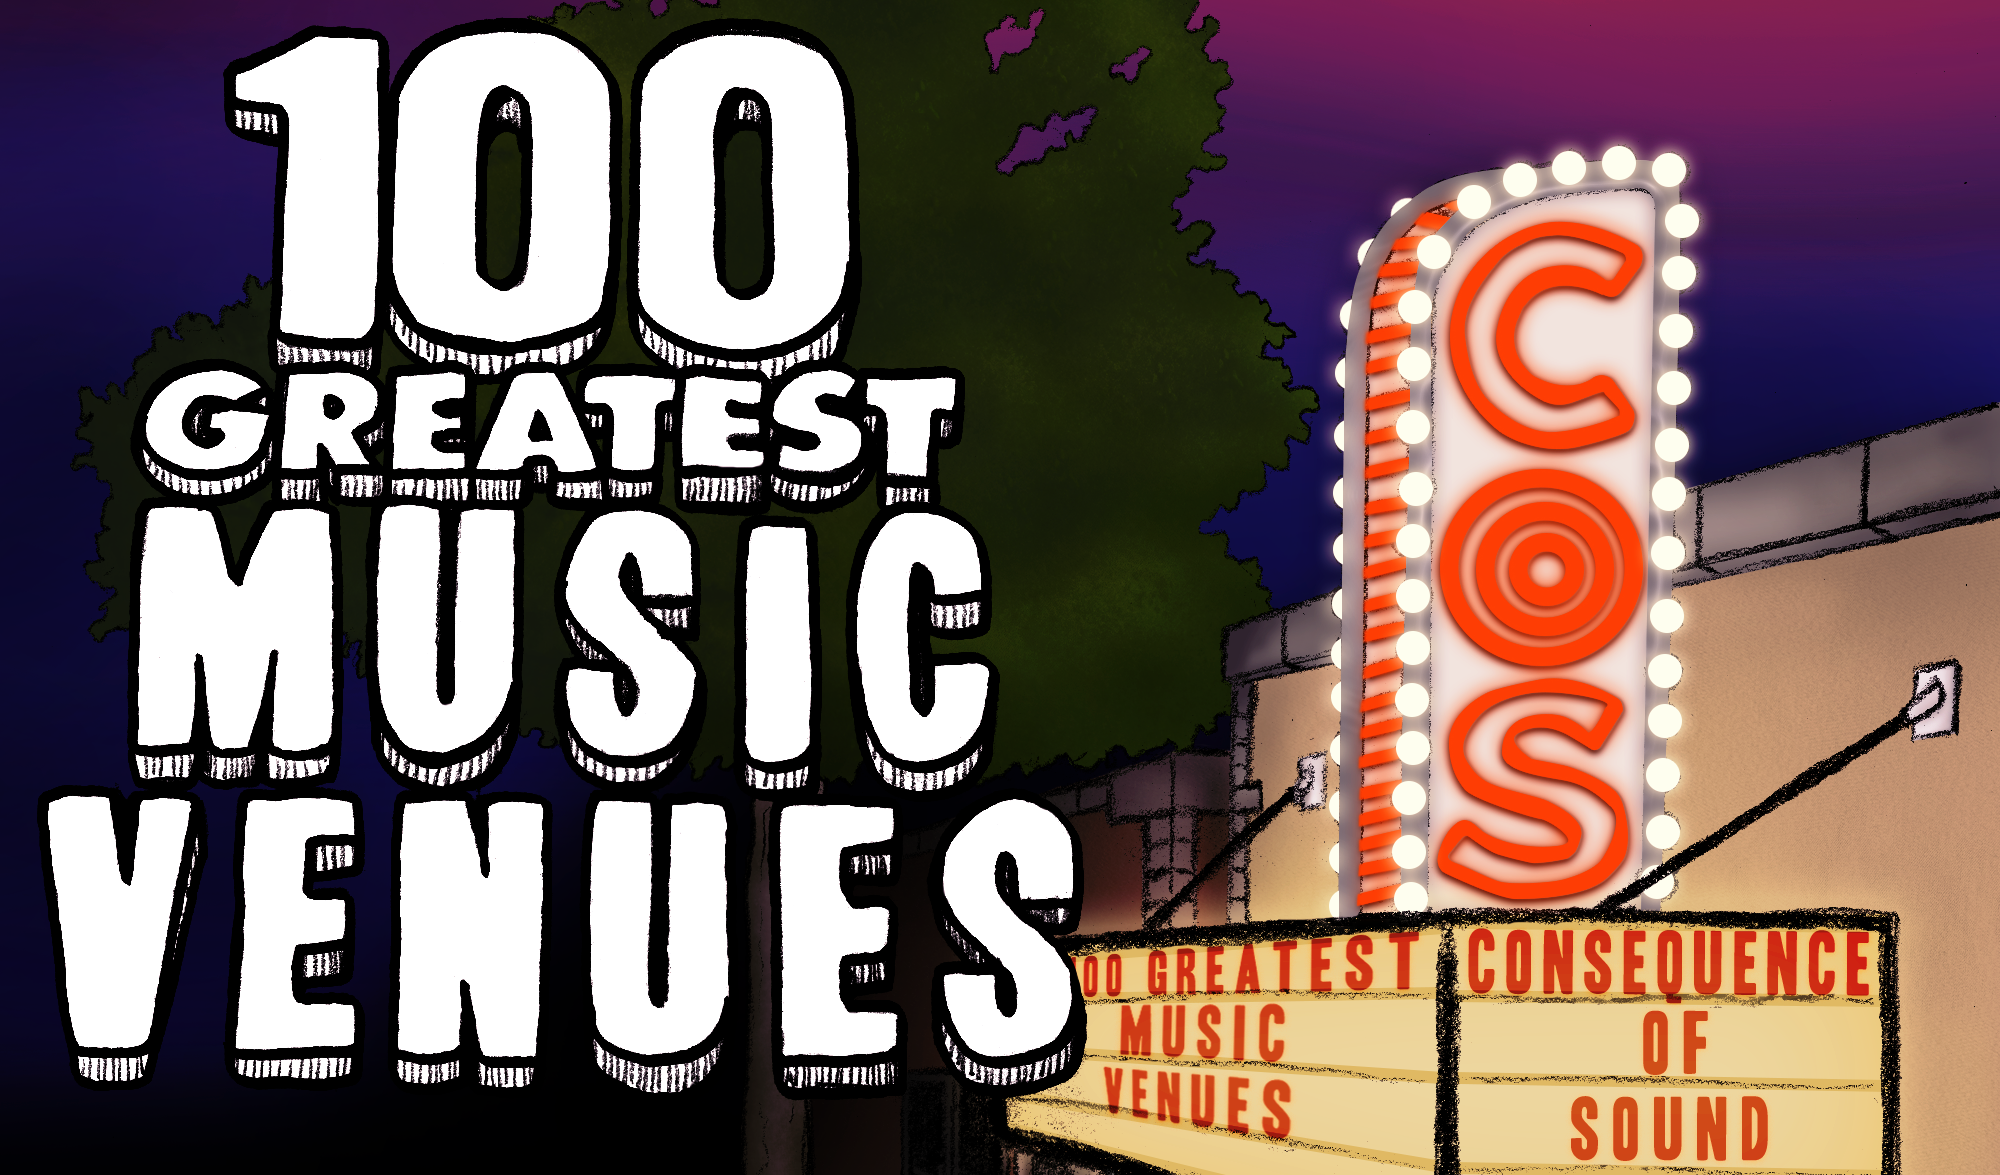 The 100 Greatest American Music Venues | Consequence of Sound | Page 8